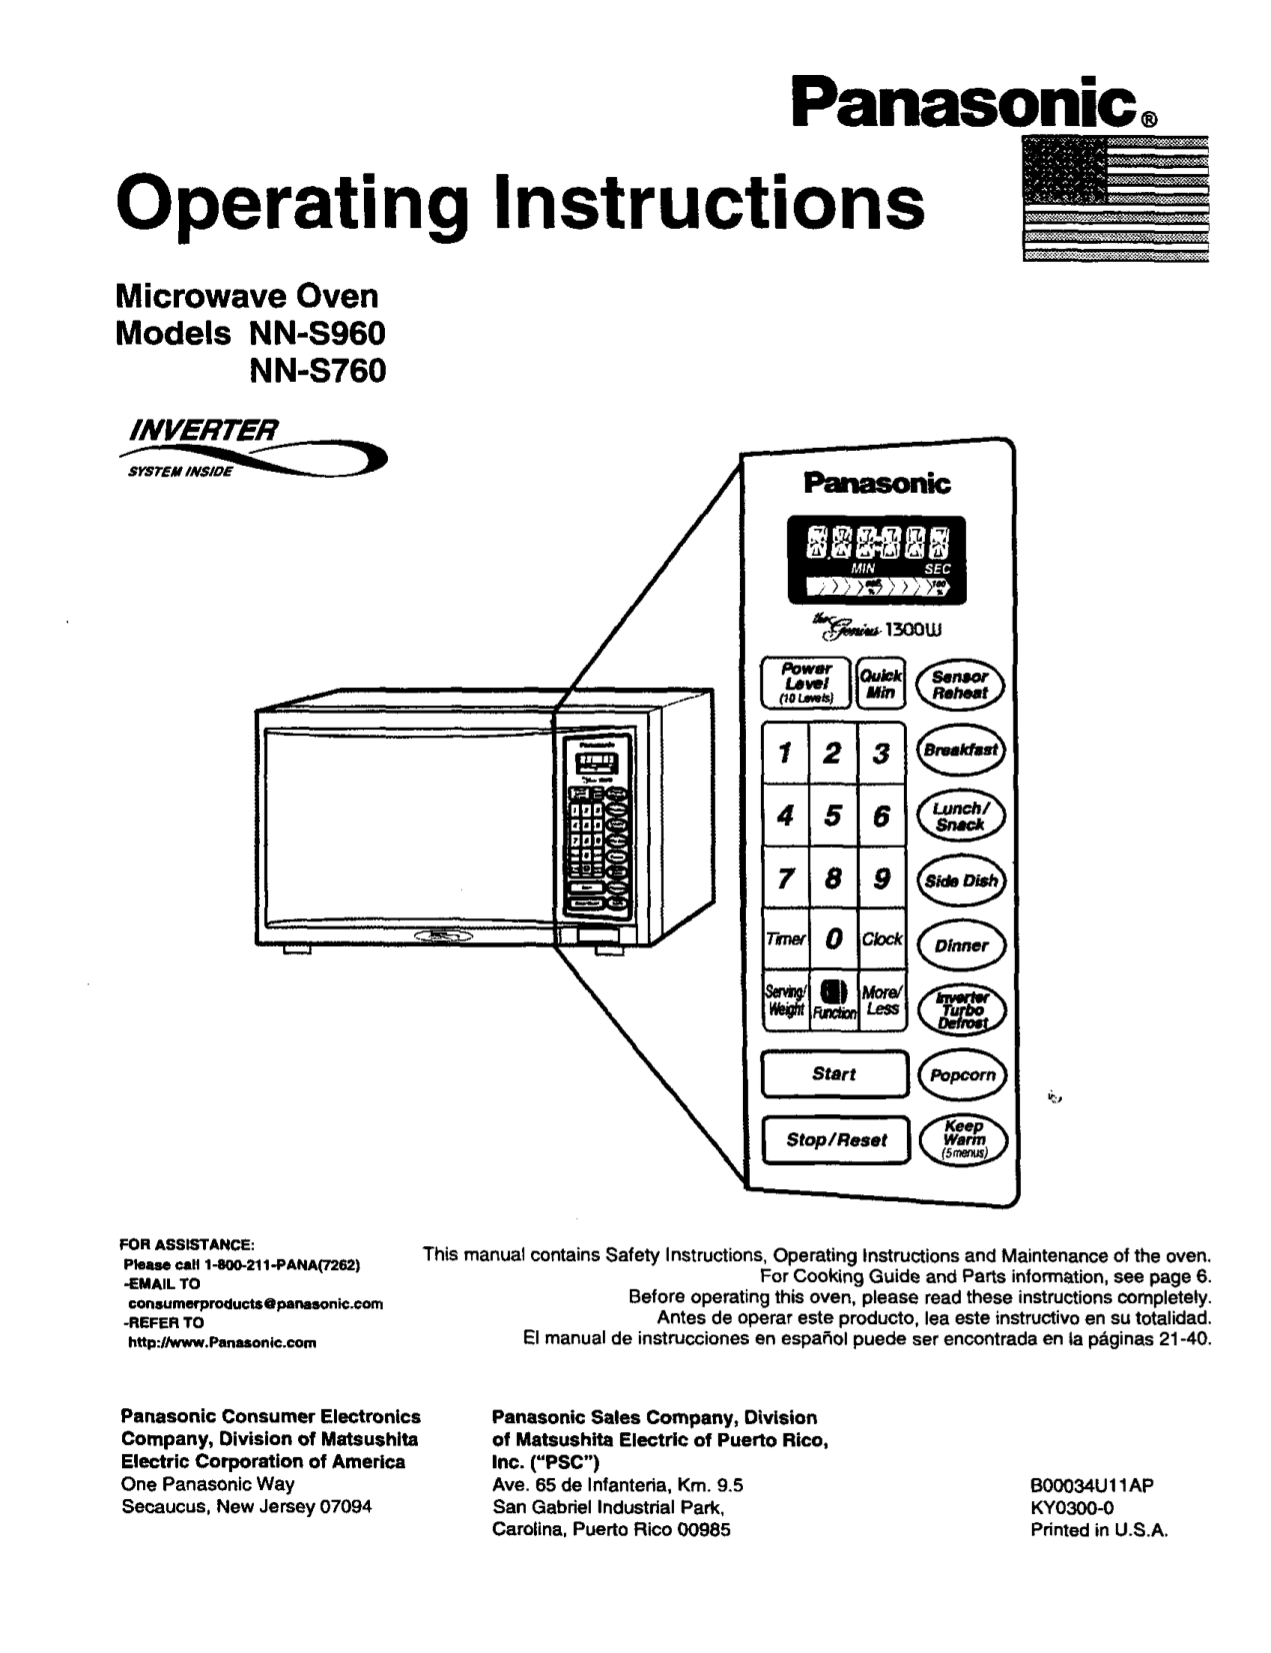 Download free pdf for Panasonic NN-S960 Microwave manual